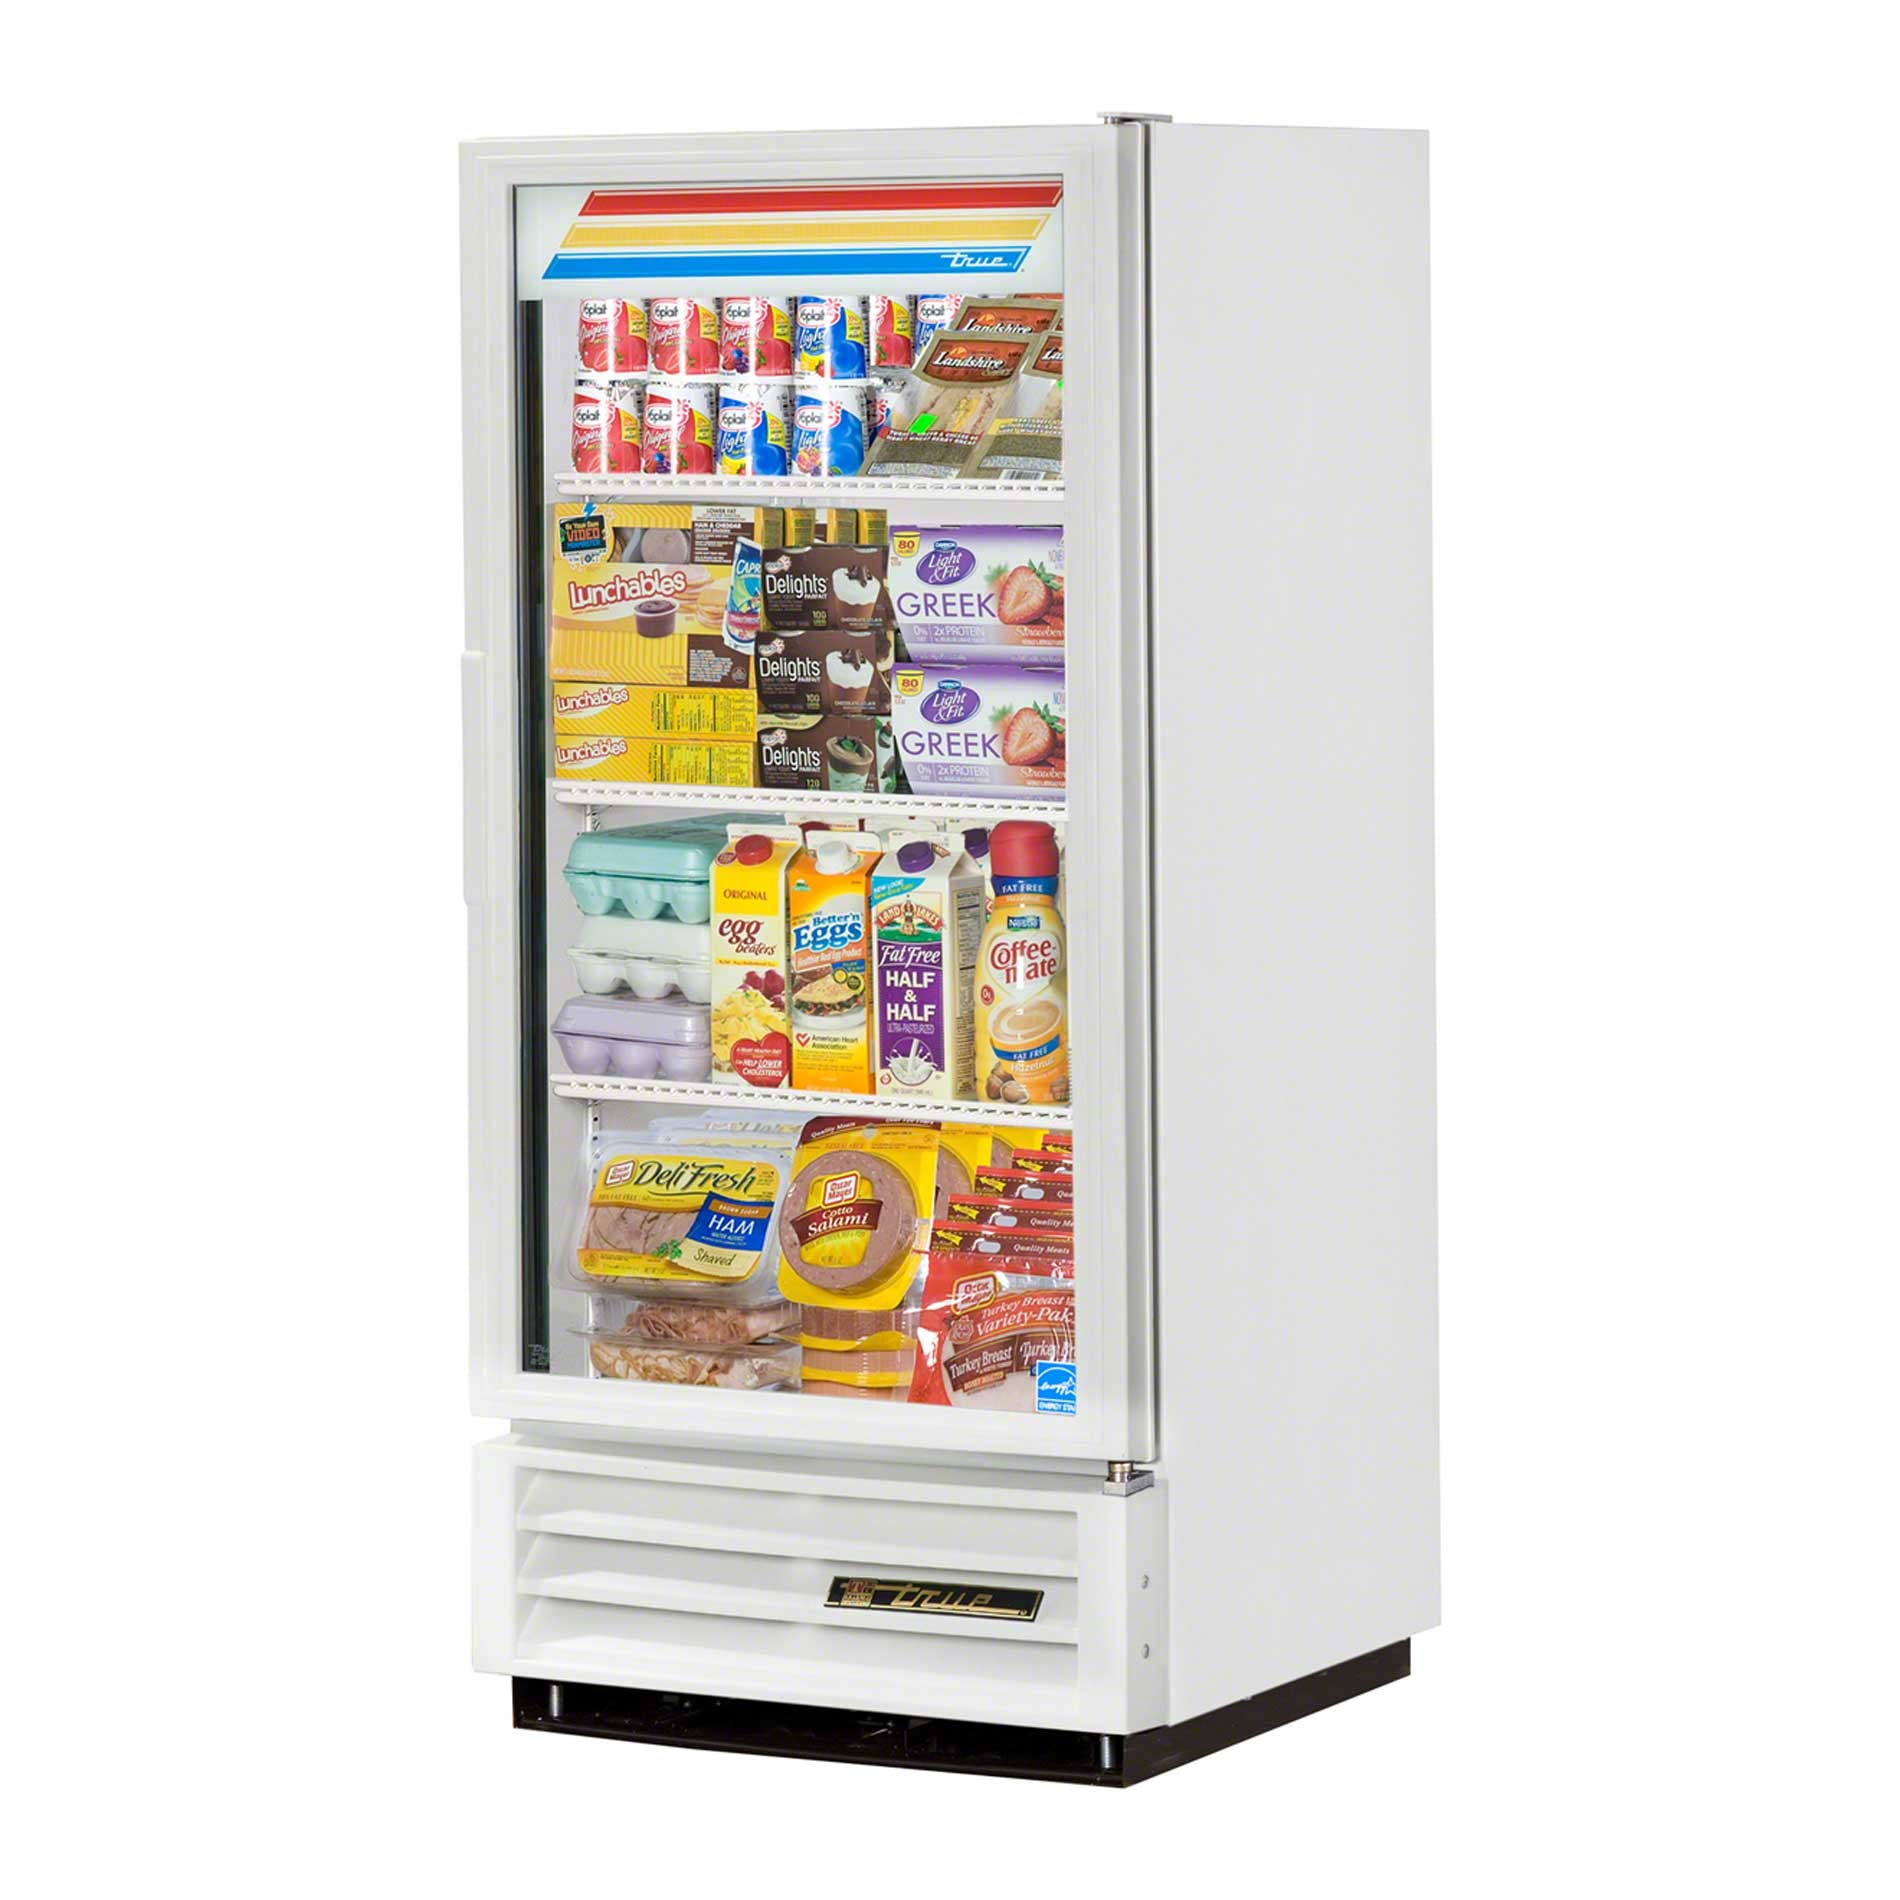 "True - GDM-10-LD WHT WHTTRM 25"" Swing Glass Door Merchandiser Refrigerator LED Commercial refrigerator sold by Food Service Warehouse"